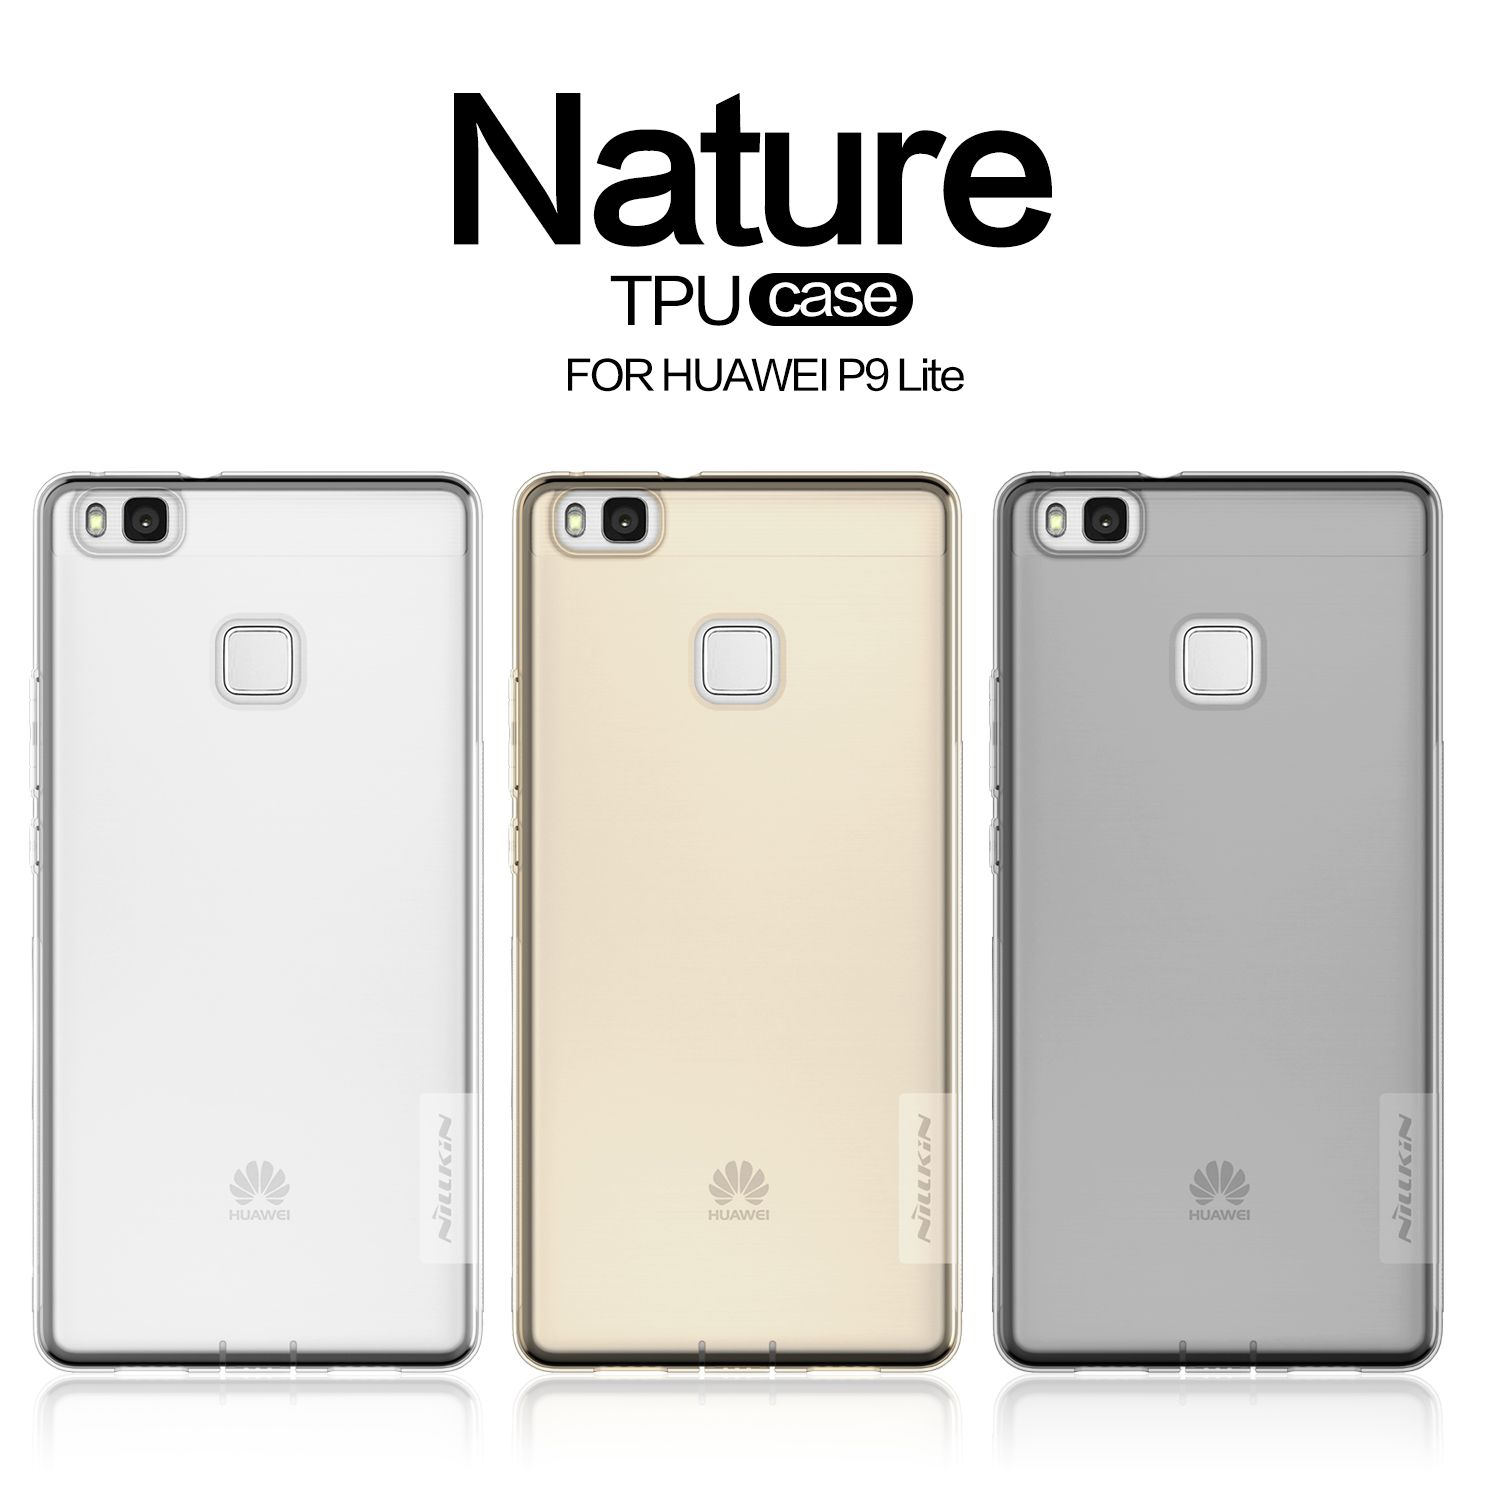 For Huawei P9 Lite/G9 Lite Transparent TPU Case NILLKIN Nature Soft Silicone Back Cover Skin For VNS-L21 VNS-L22 VNS-L23 Cases